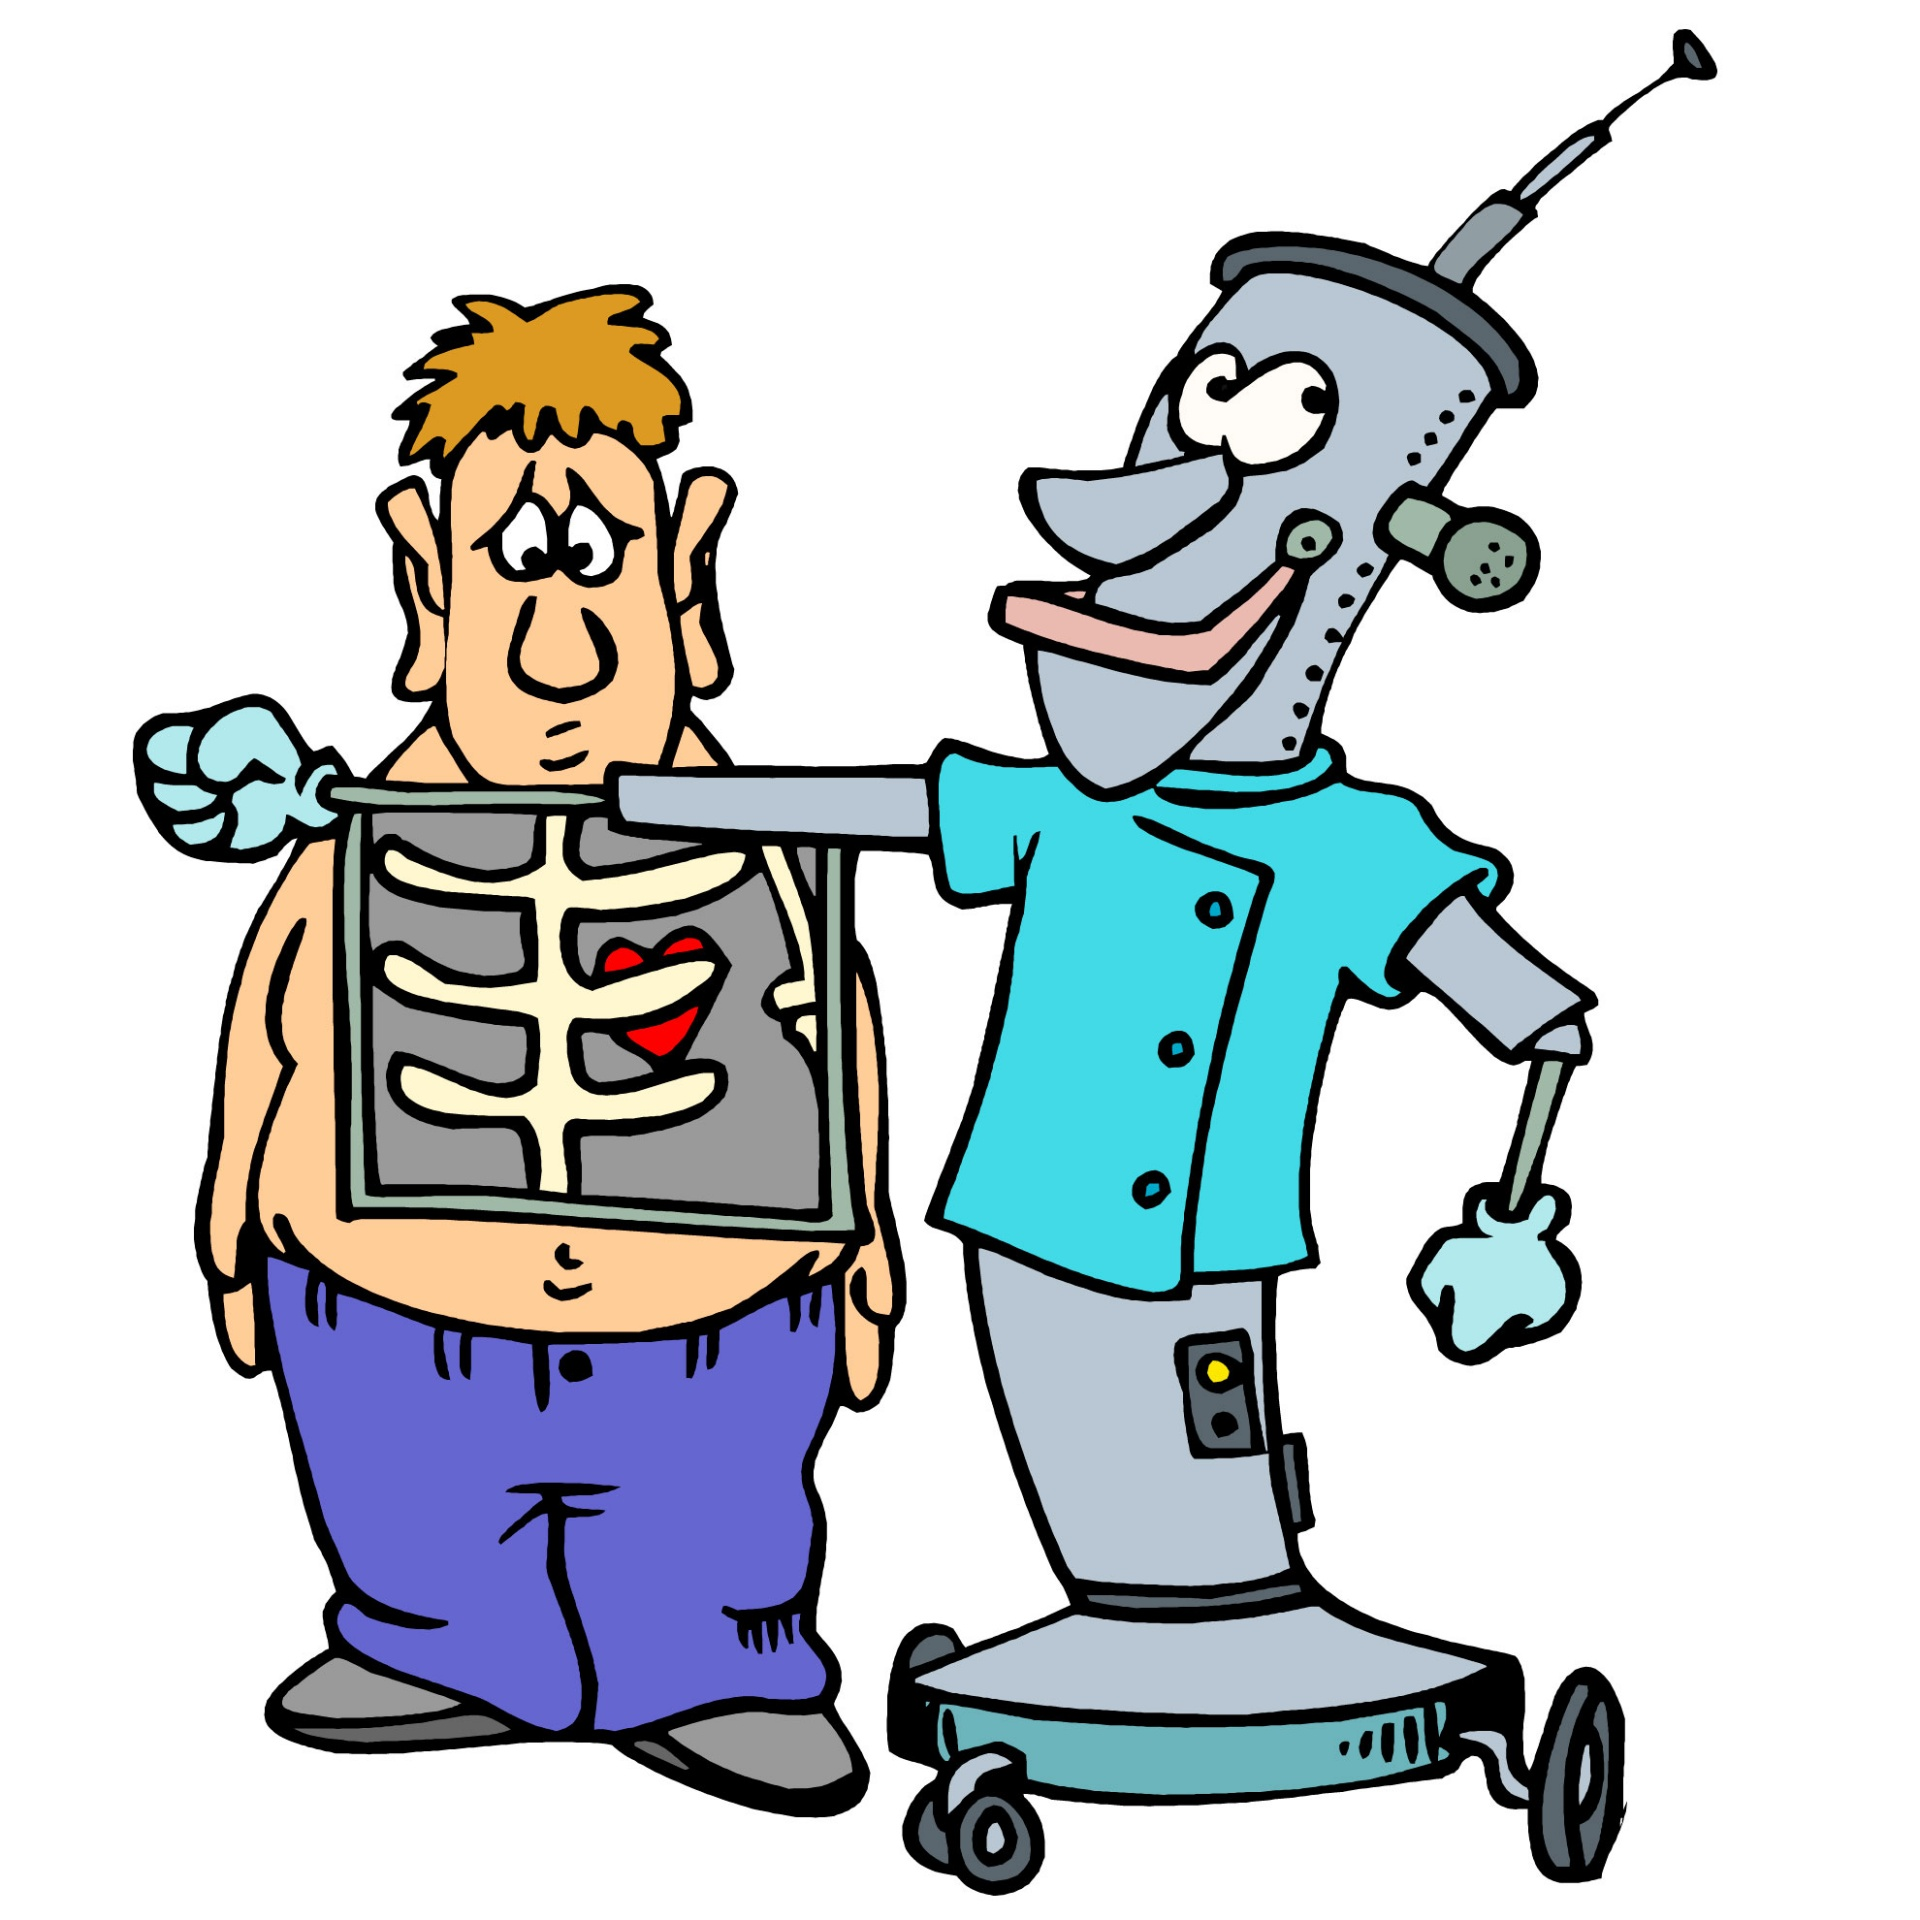 Download Free Photo Of Robot Xray Robot Free Pictures Free Photos From Needpix Com